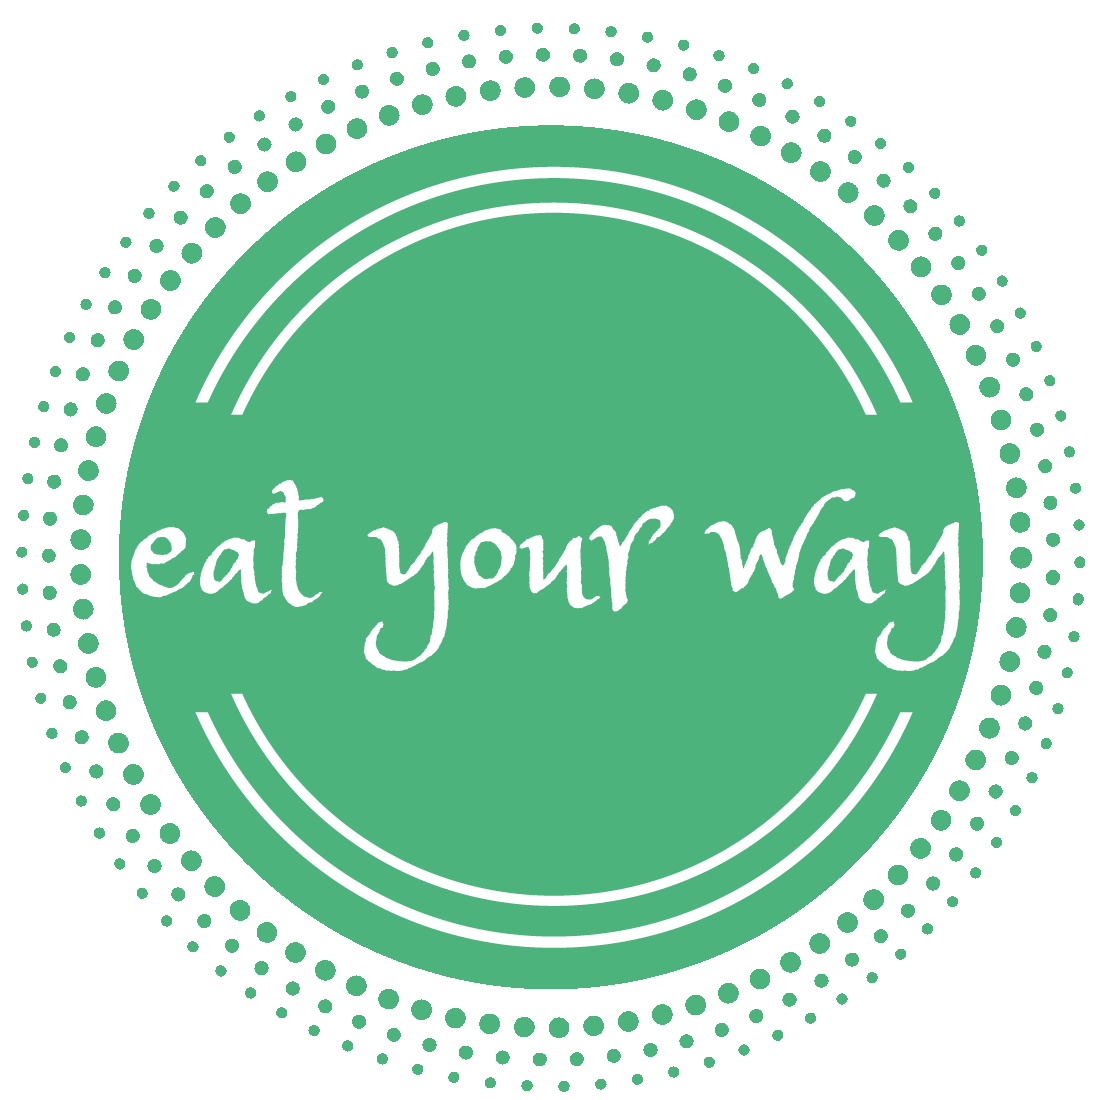 eatyourway.ch # Account #